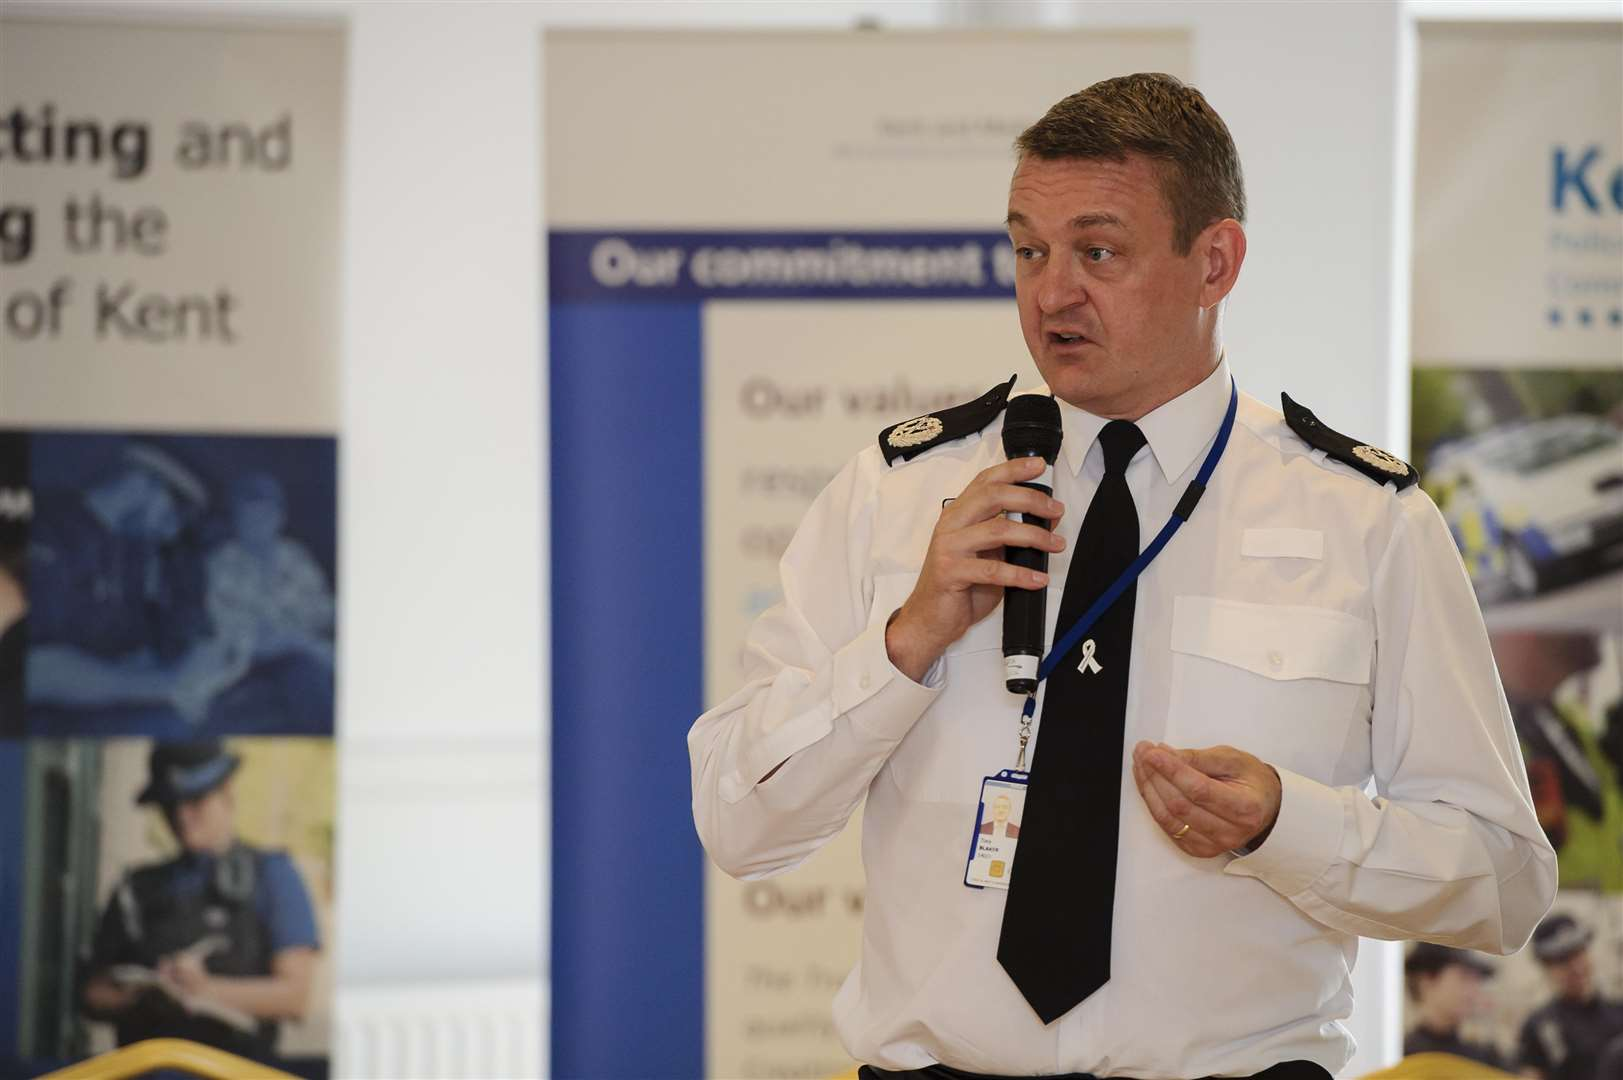 Deputy Chief Constable Tony Blaker. Picture: Andy Payton